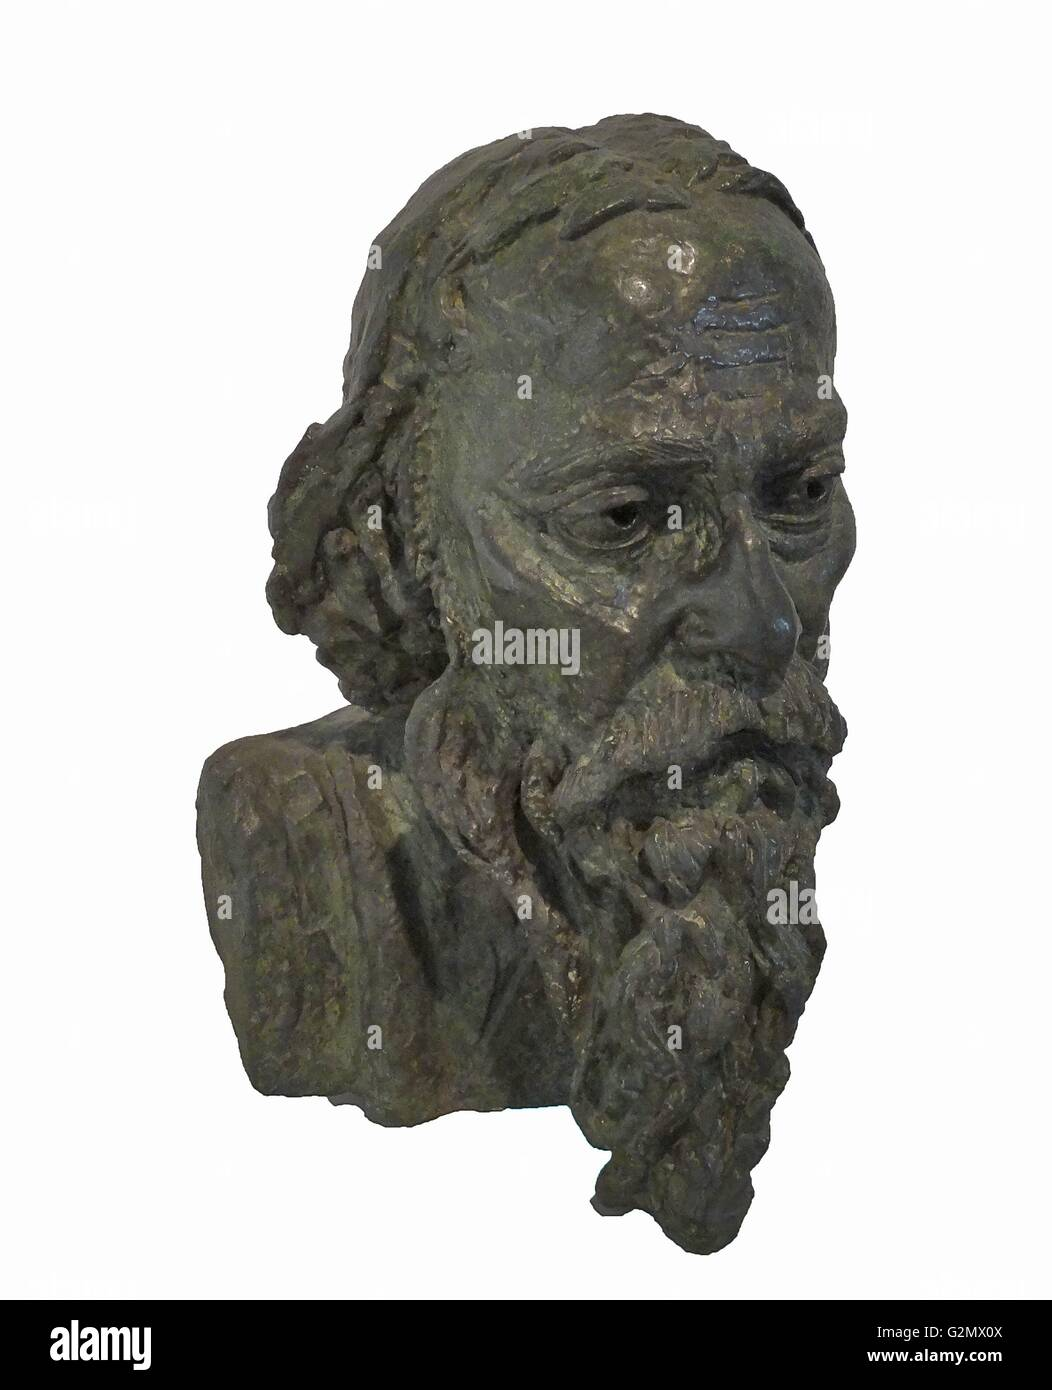 Rabindranath Tagore 1926 by the sculptor jacob Epstein 1880-1959 - Stock Image